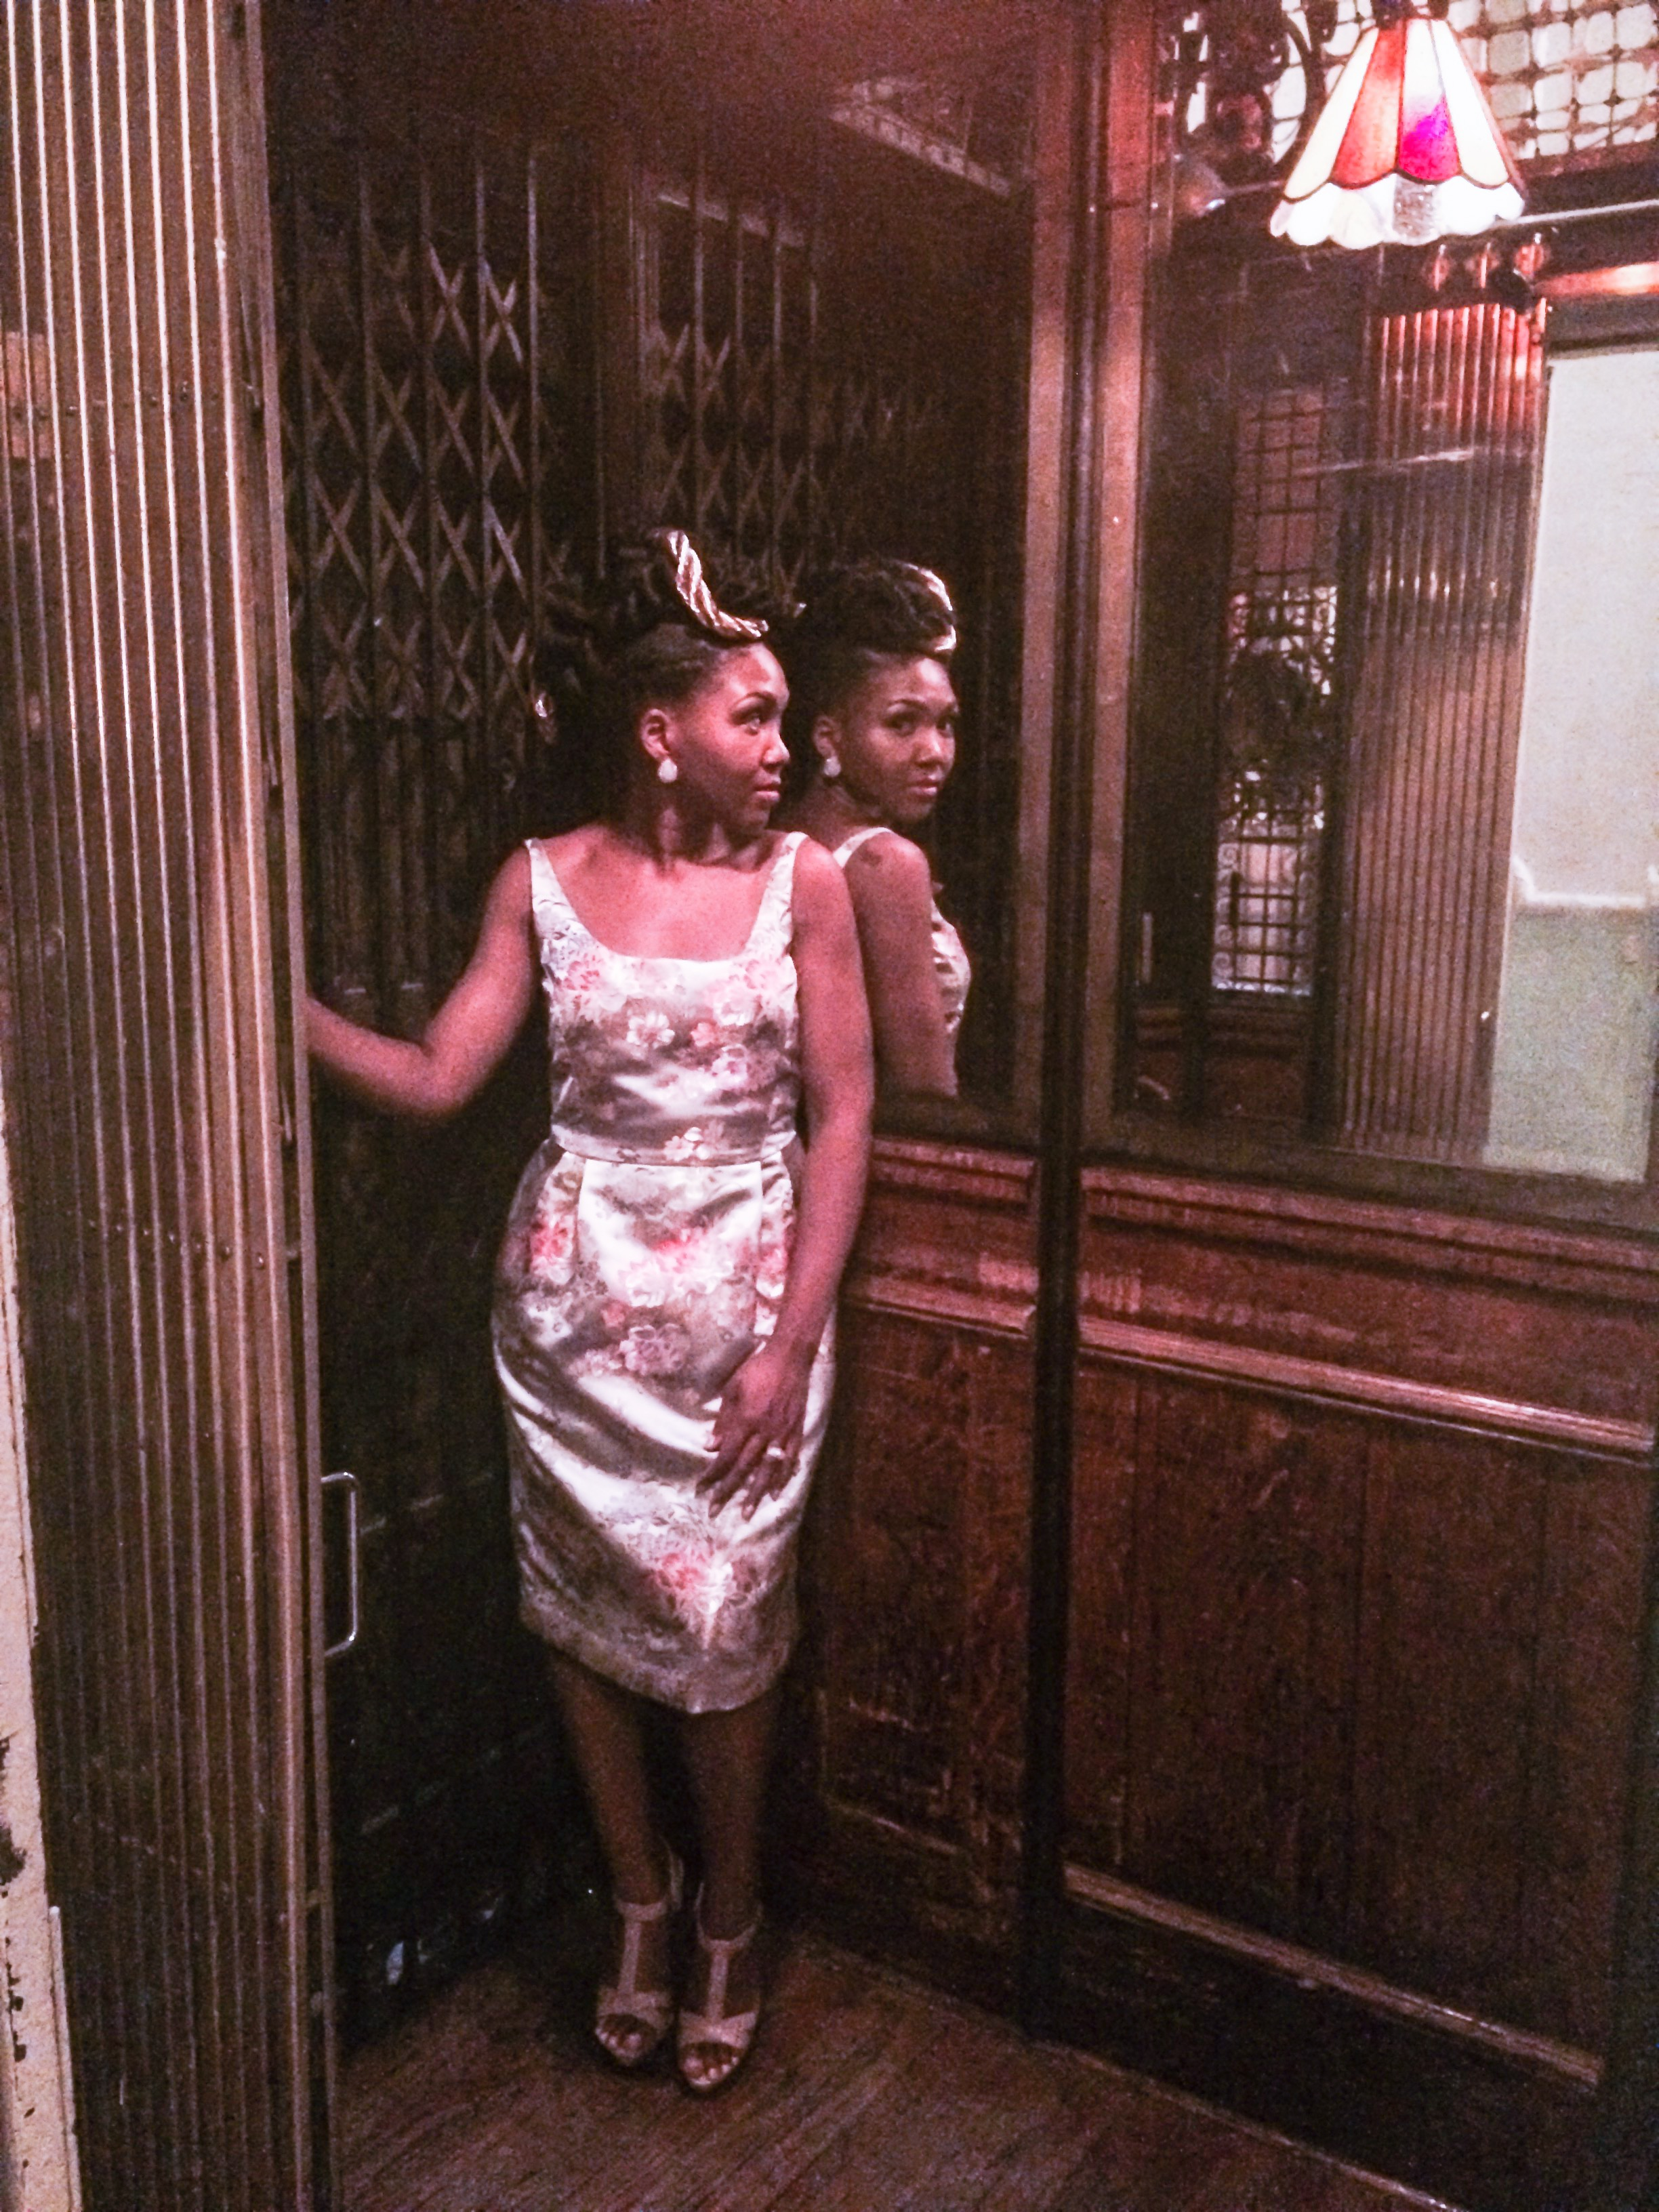 """Getting my vintage pose on in Brooklyn, NY's   first """"French birdcage"""" elevator at Grand Prospect Hall built in 1892 and still works!"""